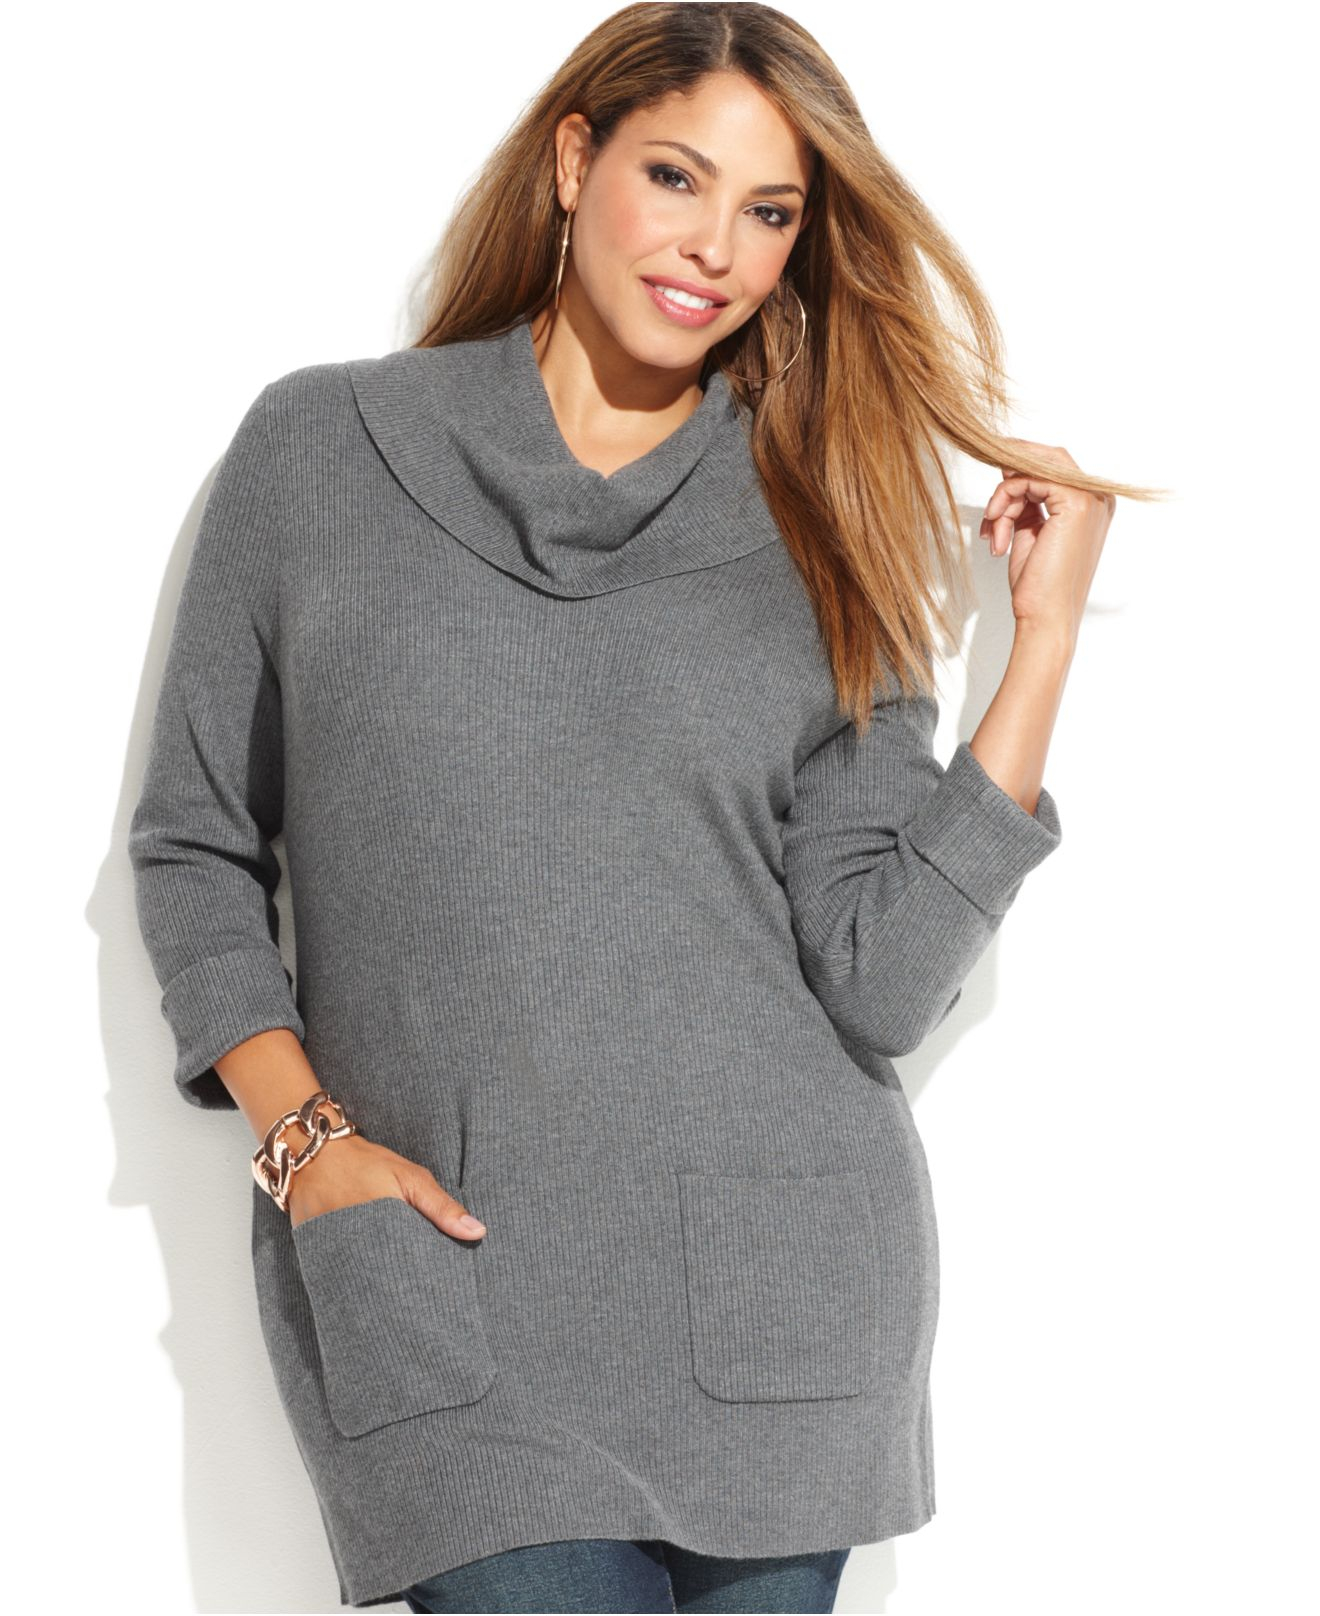 The key to wearing plus size tunics is to find a style that suits your body type. A tunic should never be oversized and shapeless. If you're an apple shape, focus on your neckline with V-necks, off-the-shoulder tops and split-neck styles.